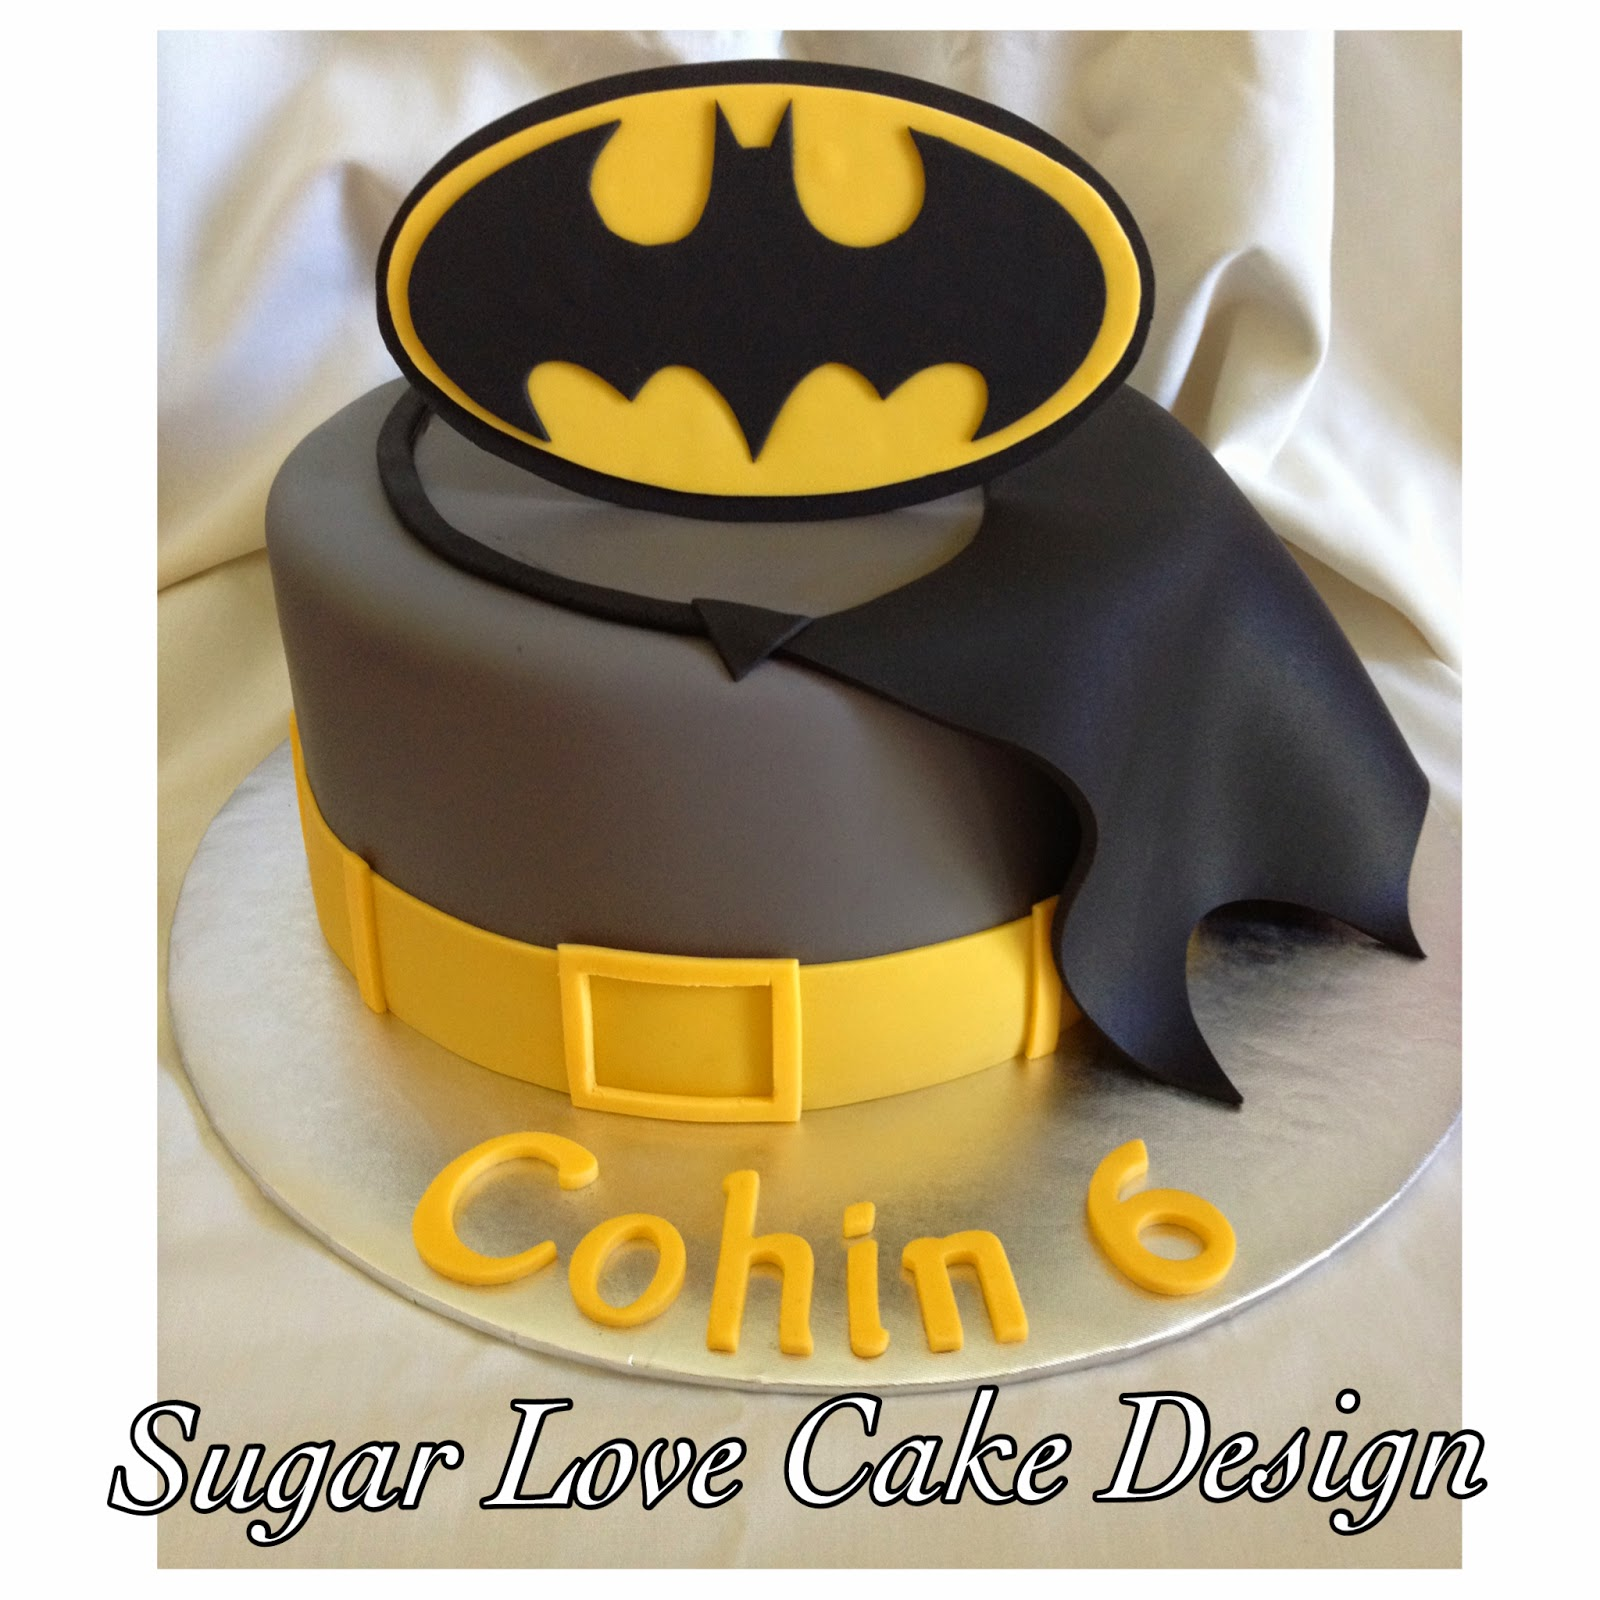 Sugar Love Cake Design Batman Cake